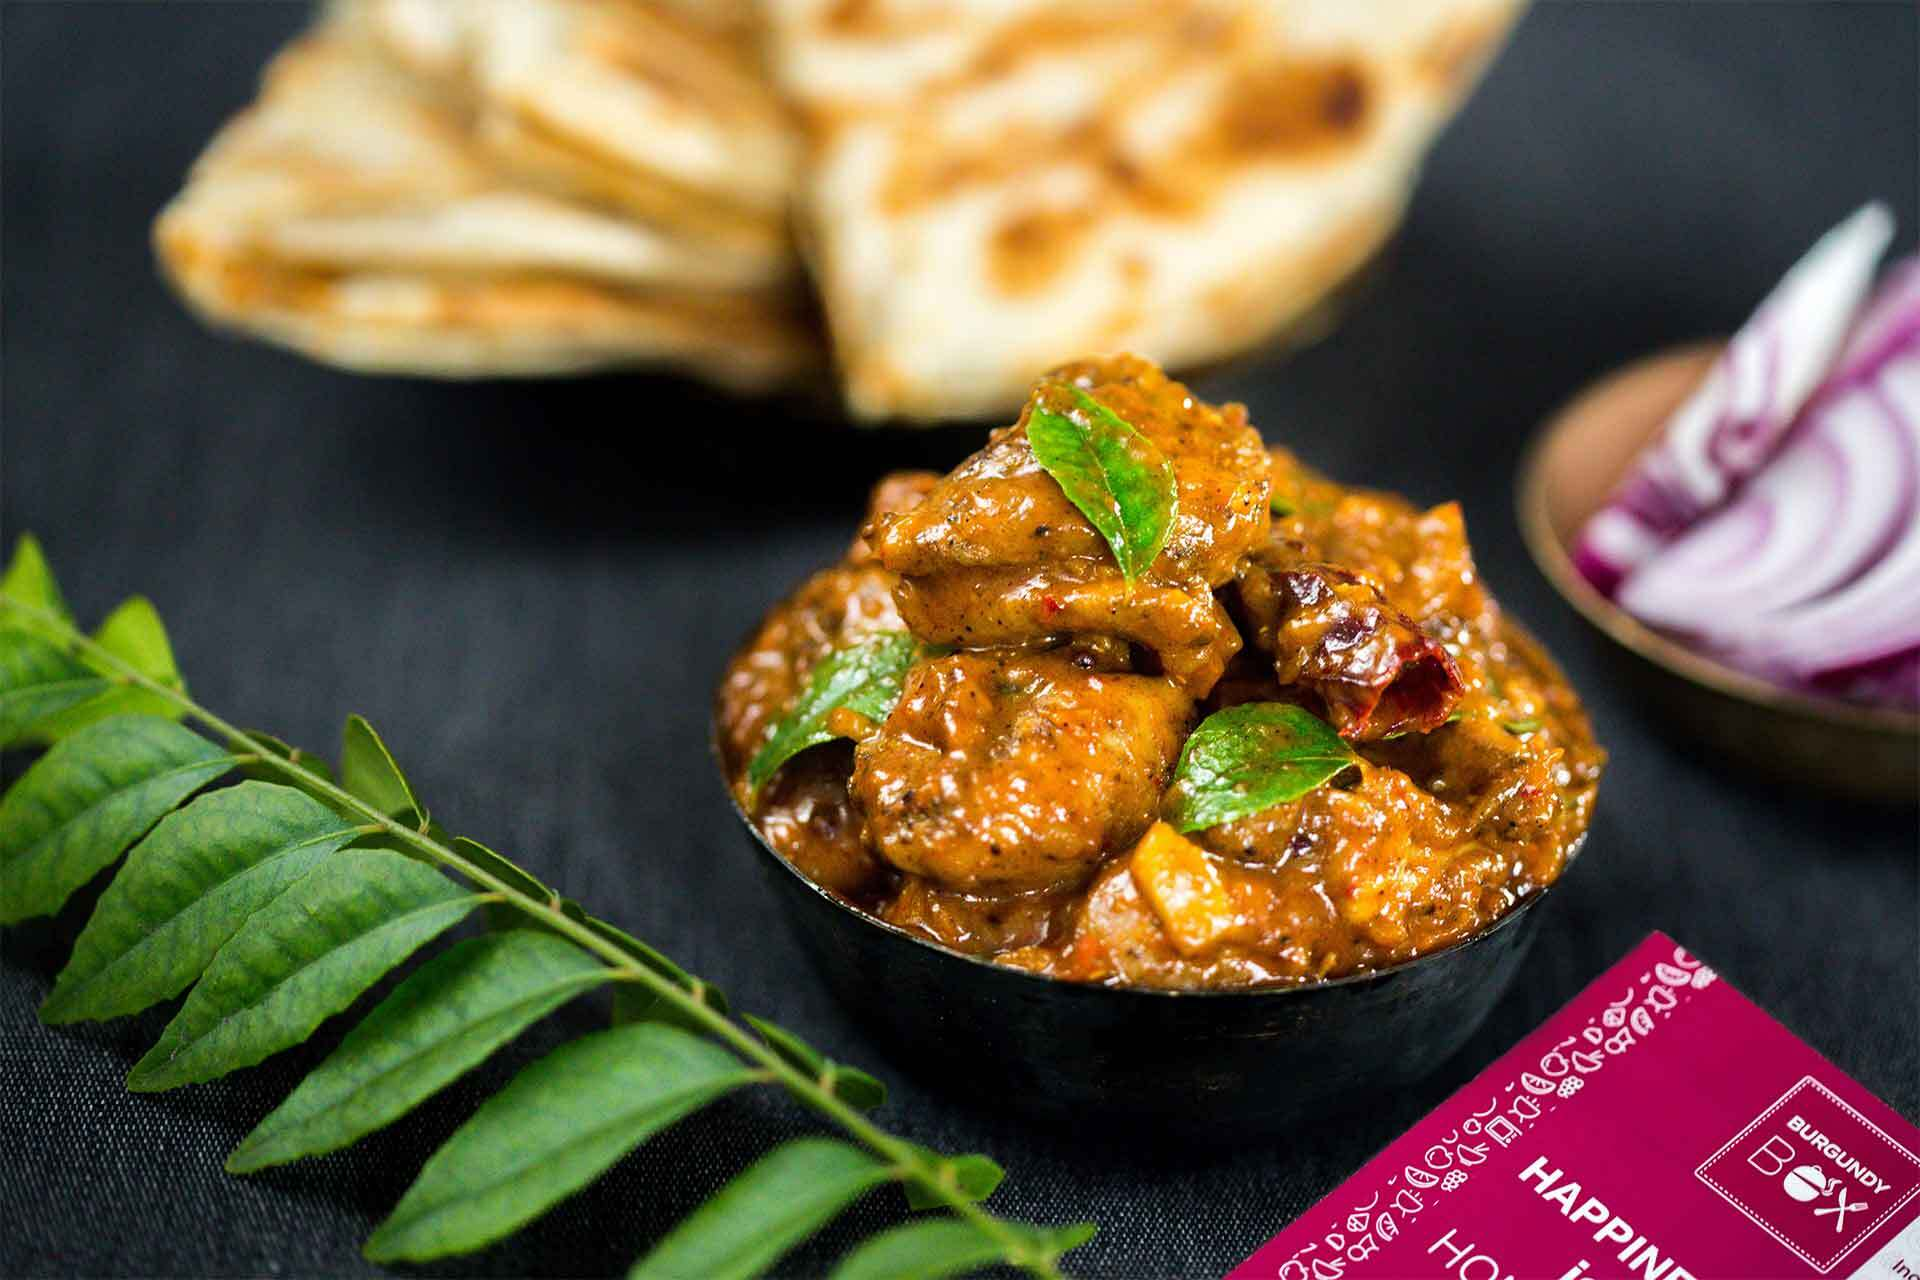 Burgundy Box's Chettinad Chicken Curry